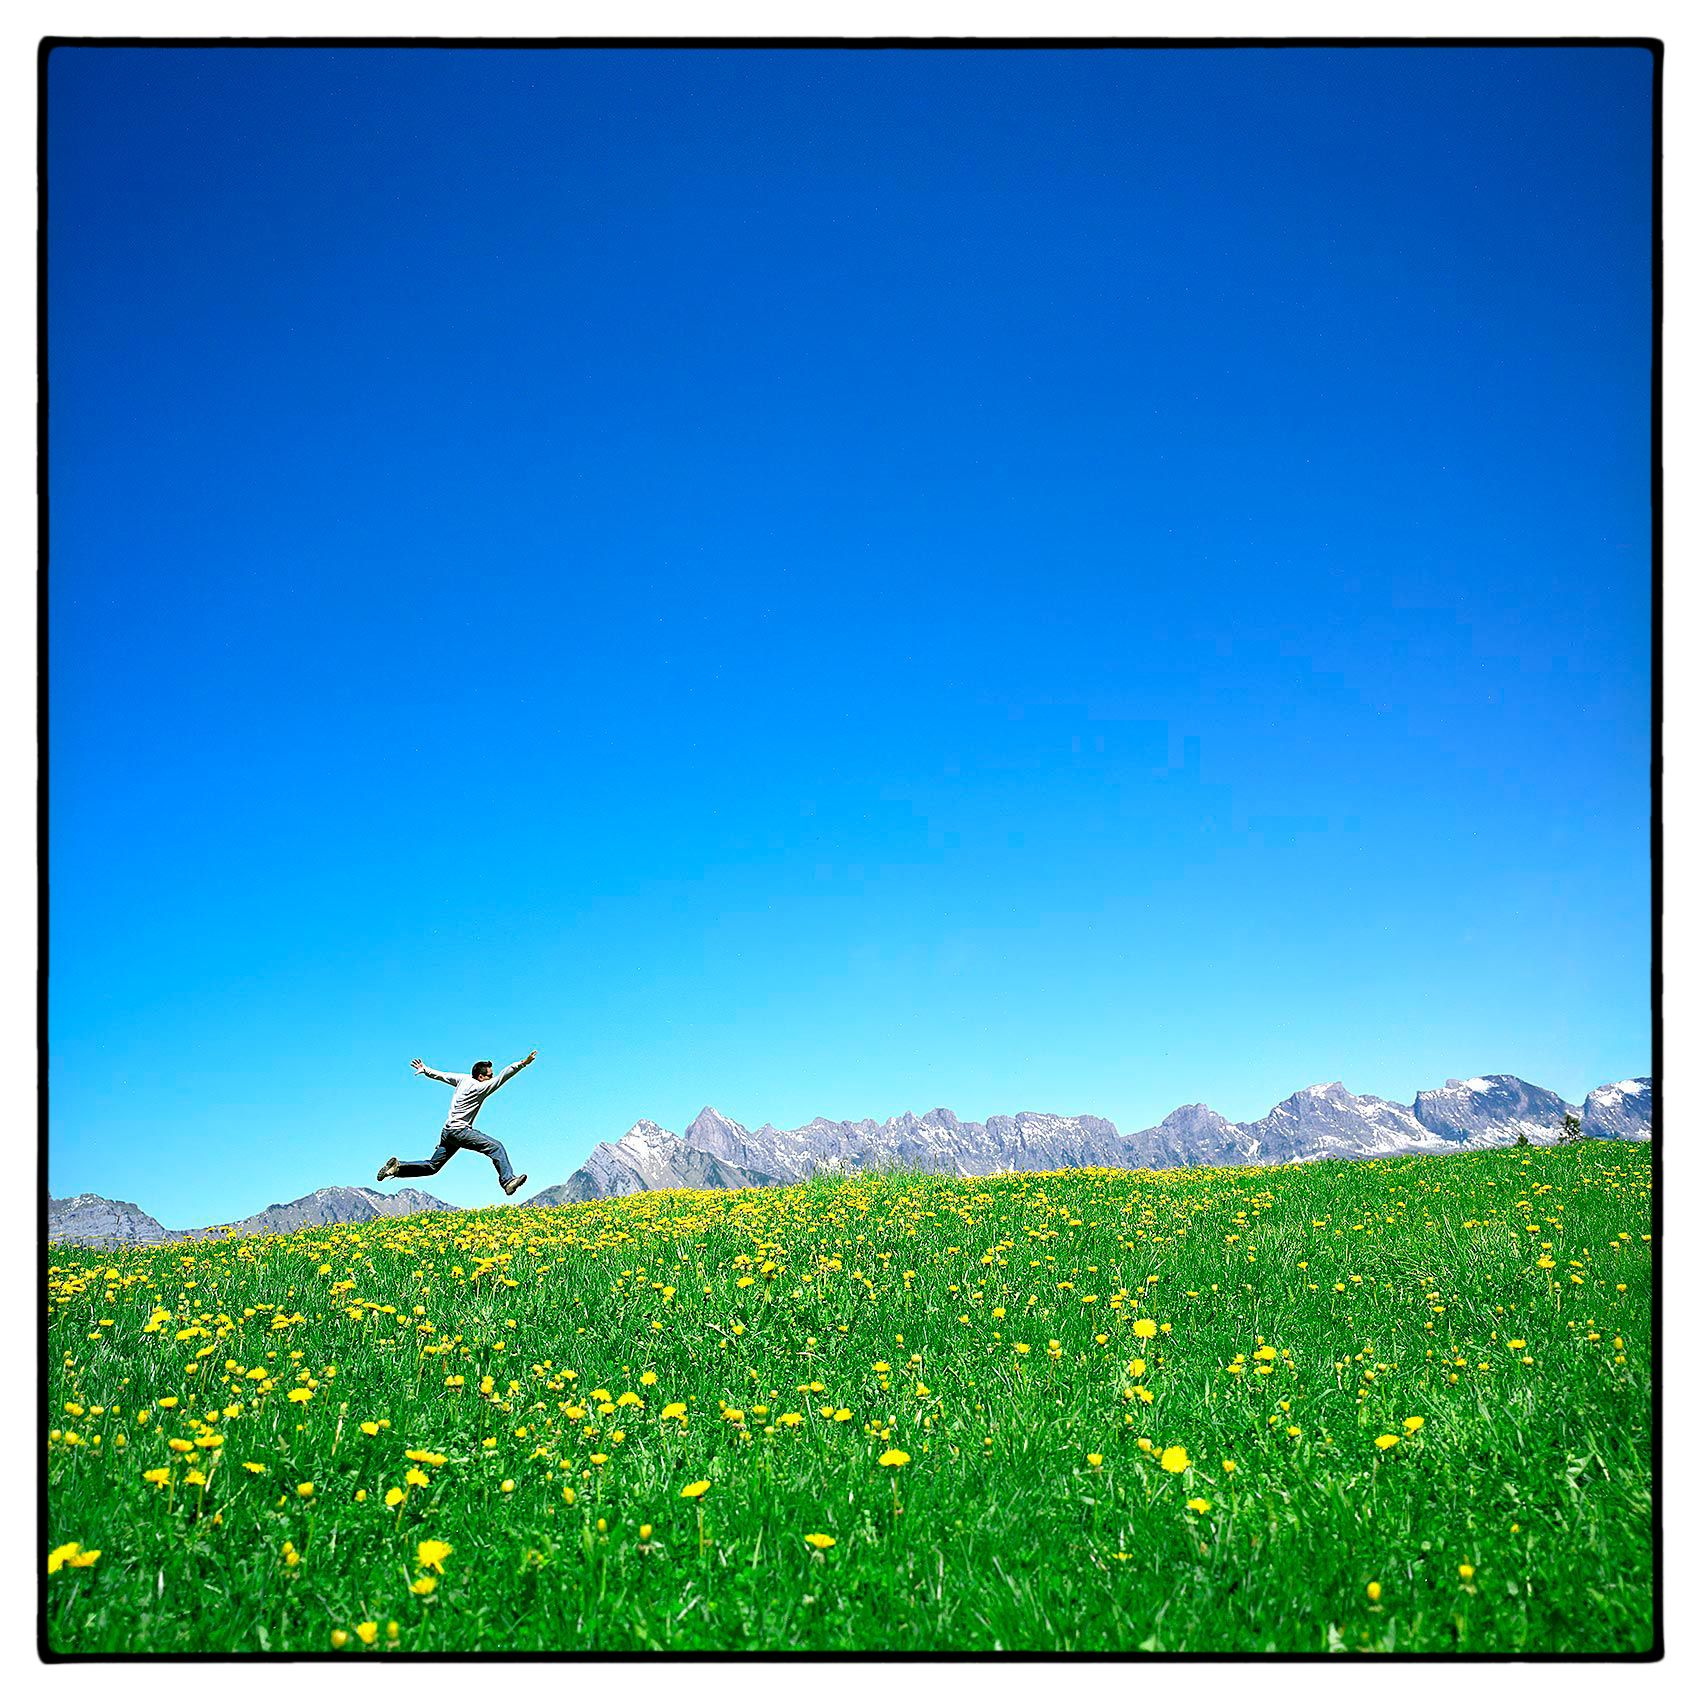 viradeth-manixab-jumps-in-a-green-field-in-front-of-the-swiss-alps